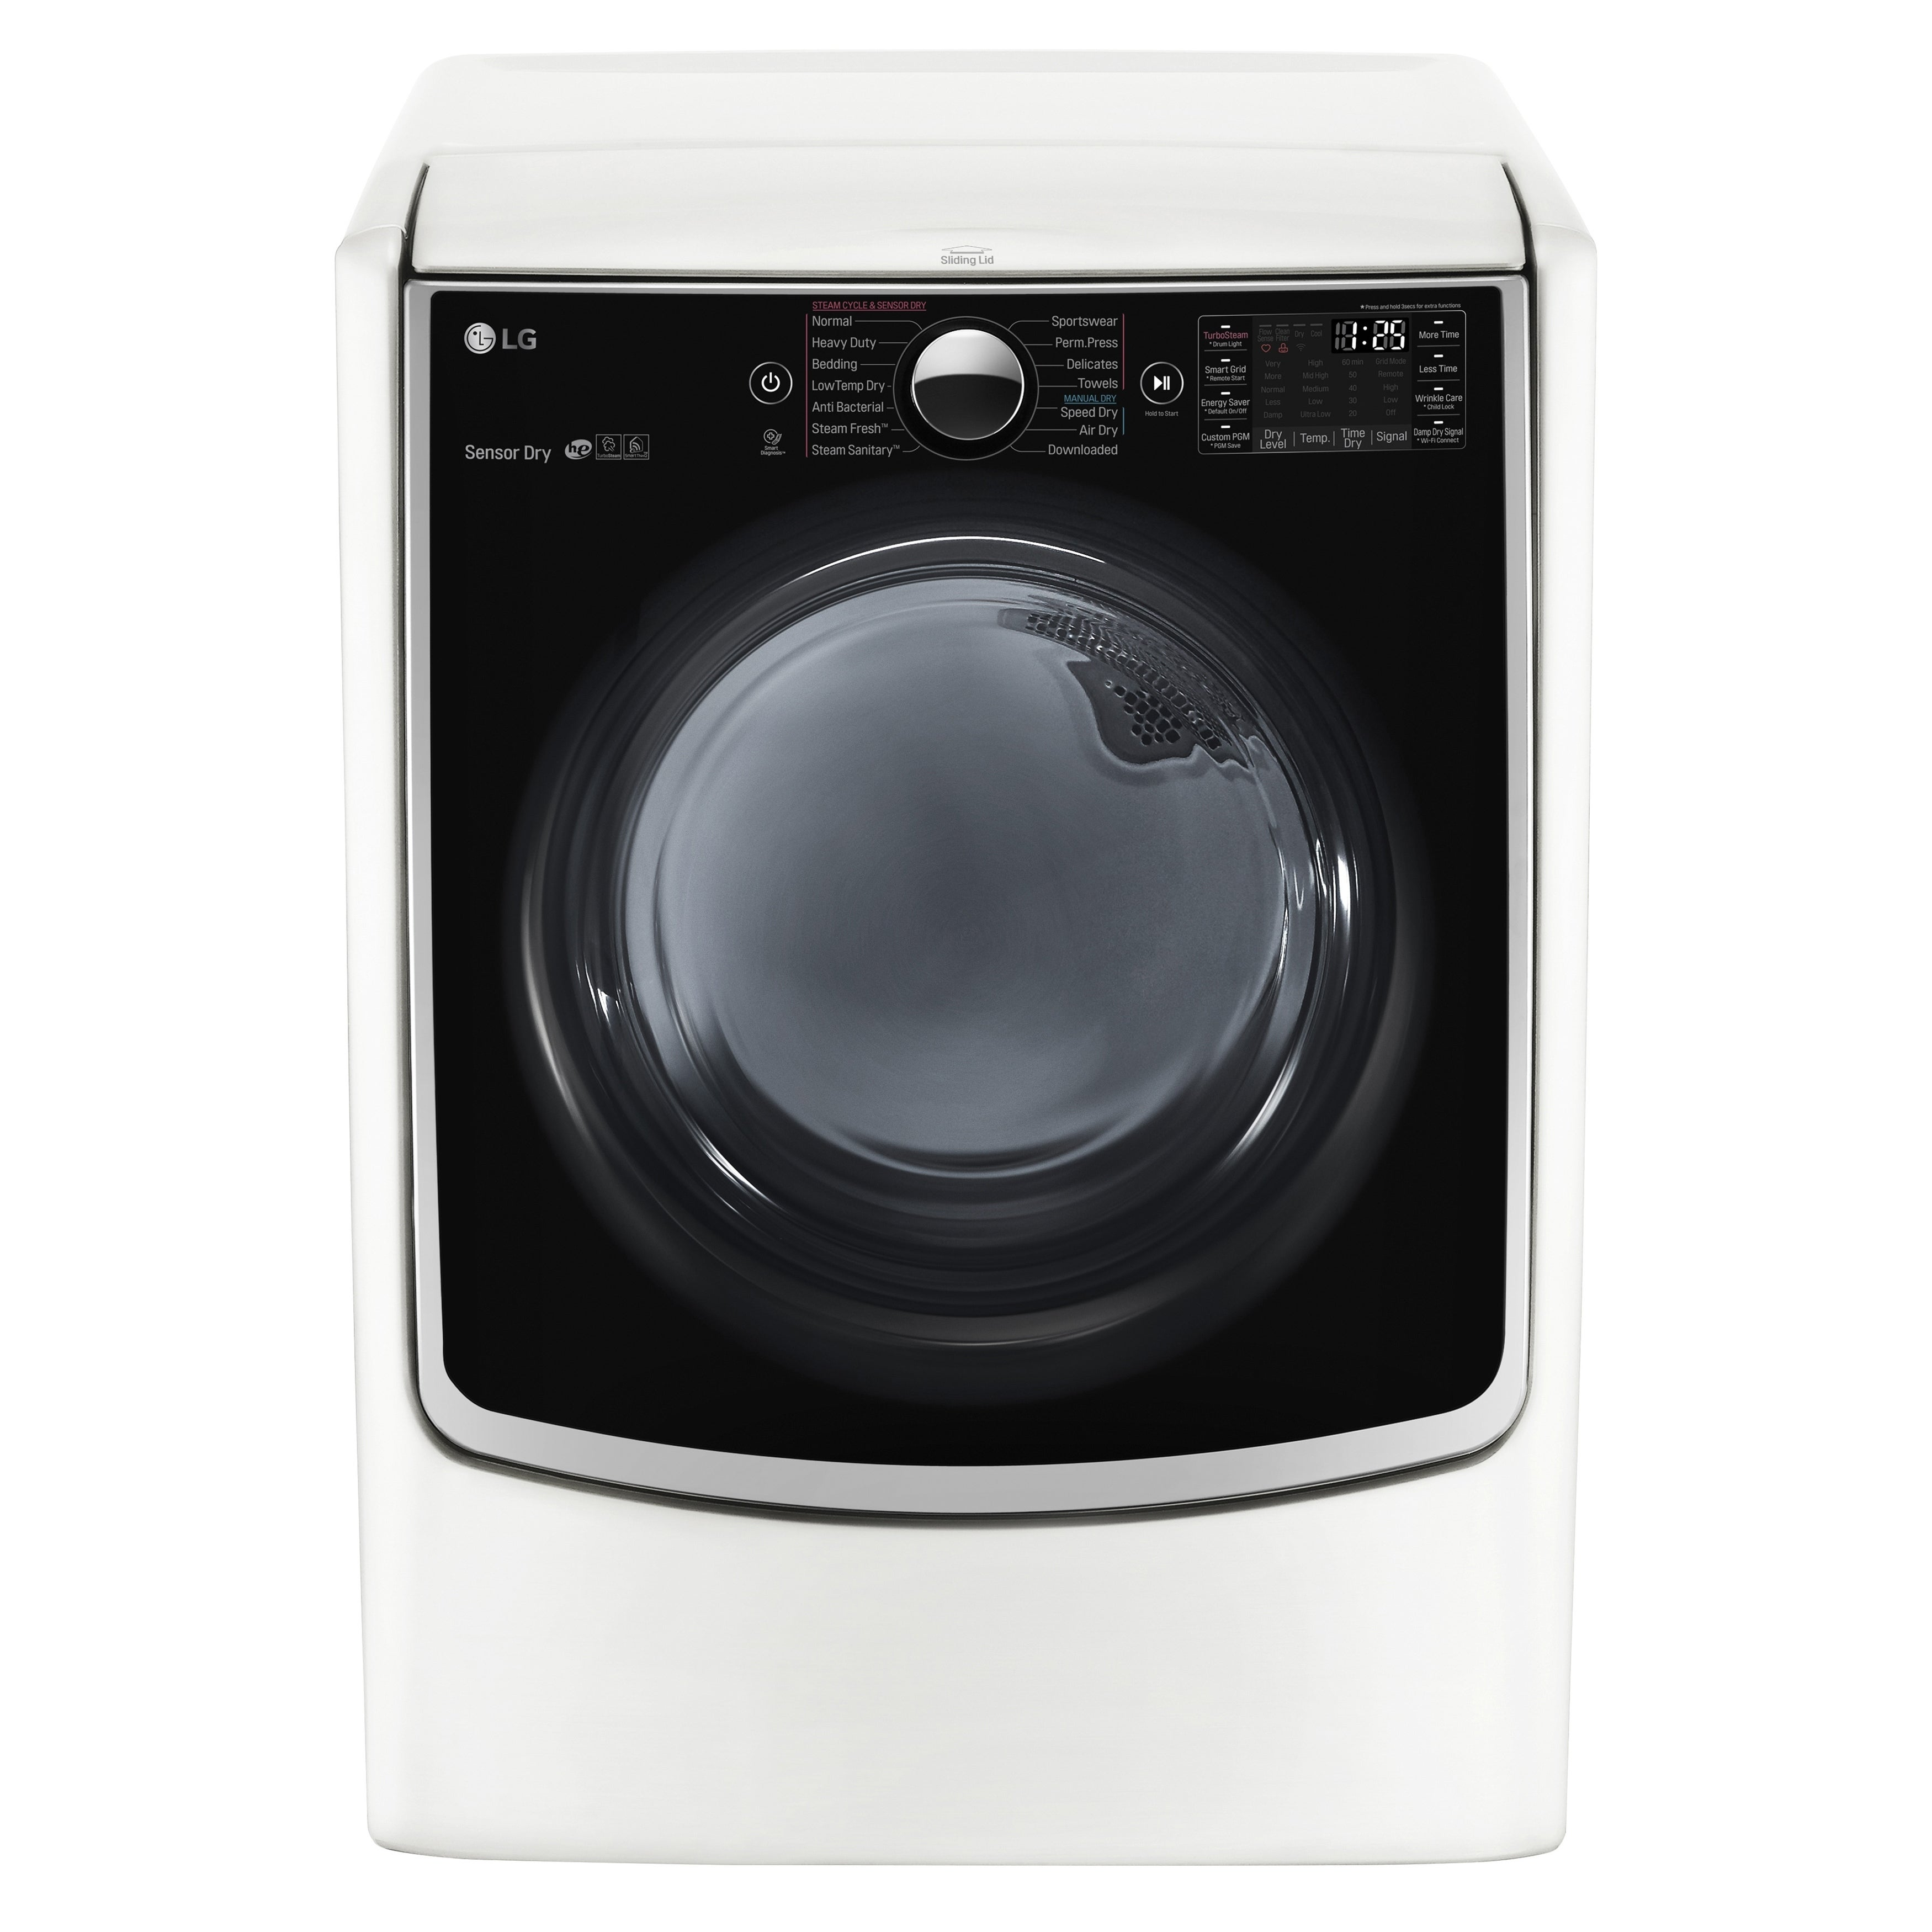 LG DLEX5000W 7.4 cu.ft. Ultra Large Capacity TurboSteam™ ...